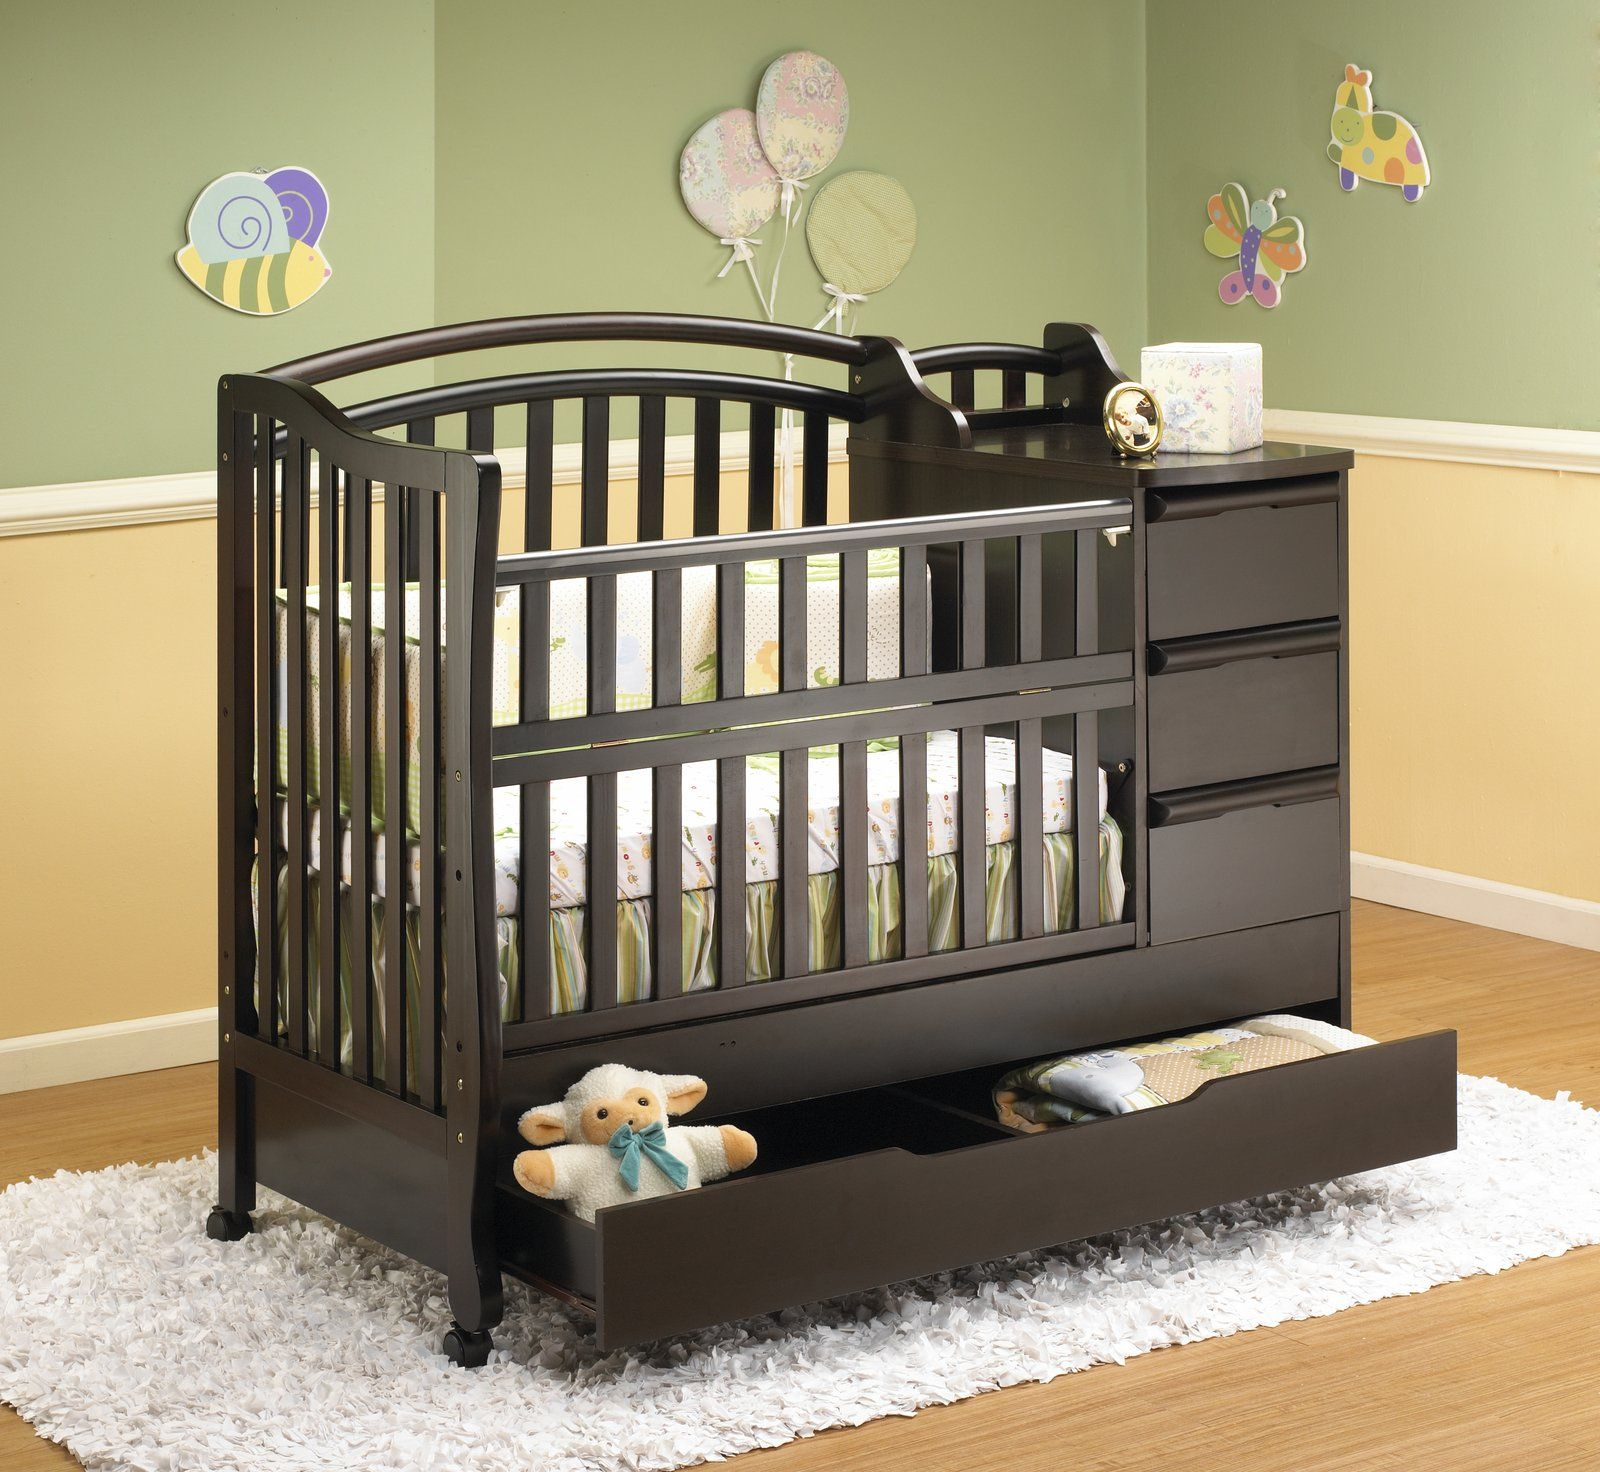 Crib And Changing Table Combo Mini Crib Bedding Crib With Changing Table Cribs